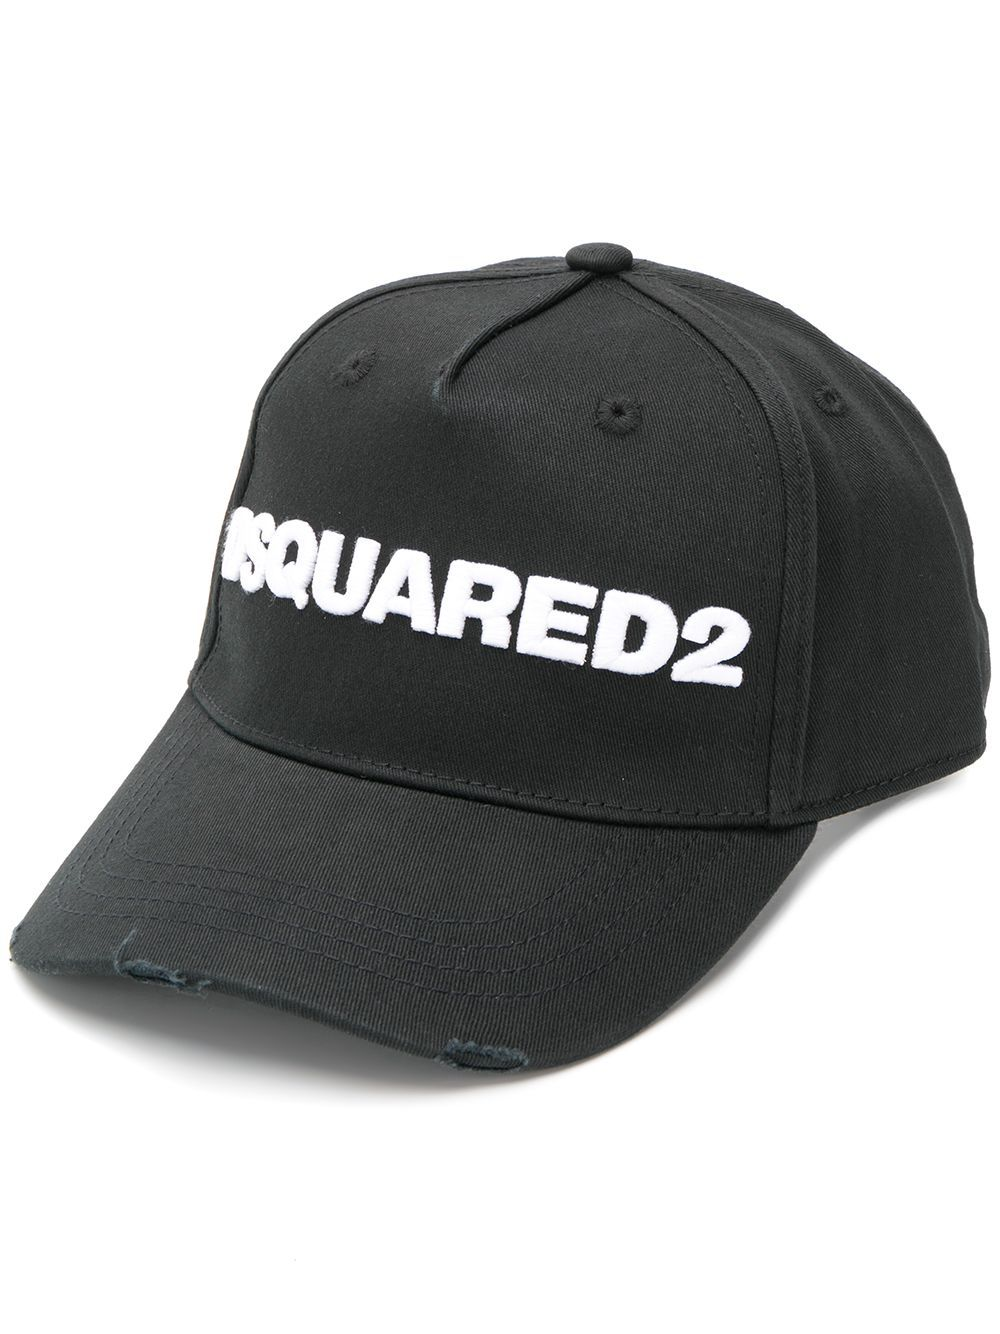 DSQUARED2 Logo Distressed Cap Black